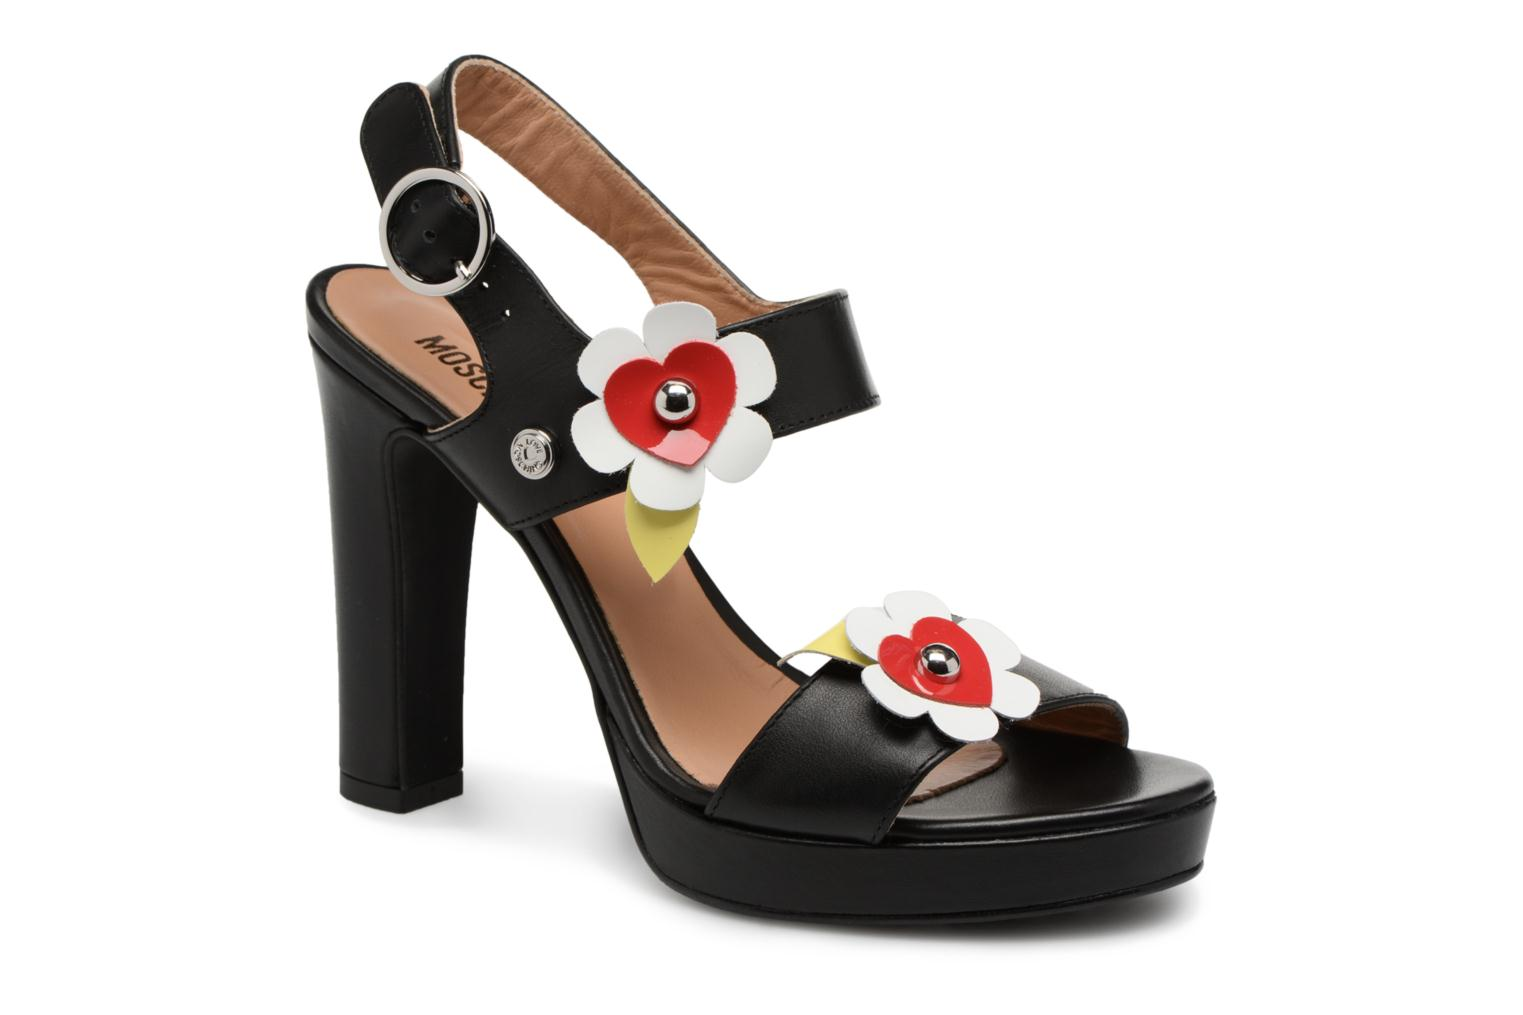 Chaussures - Sandales Post Orteils Moschino bFVB6B77MG